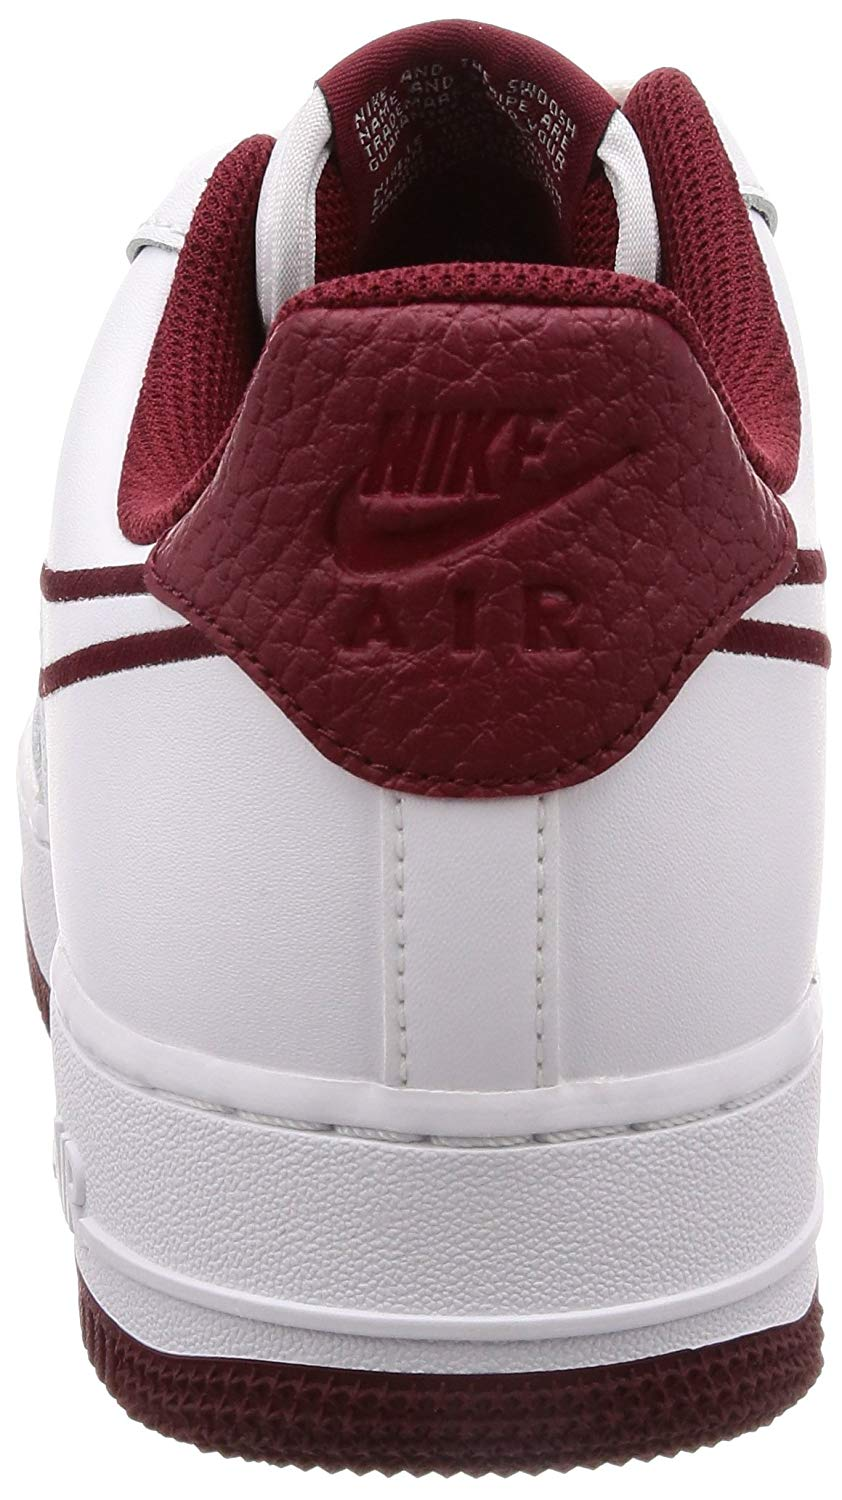 wholesale dealer d2e24 1abe7 ... Load image into Gallery viewer, NIKE Air Force 1 Inch07 Lthr Mens  Style  AJ7280 ...